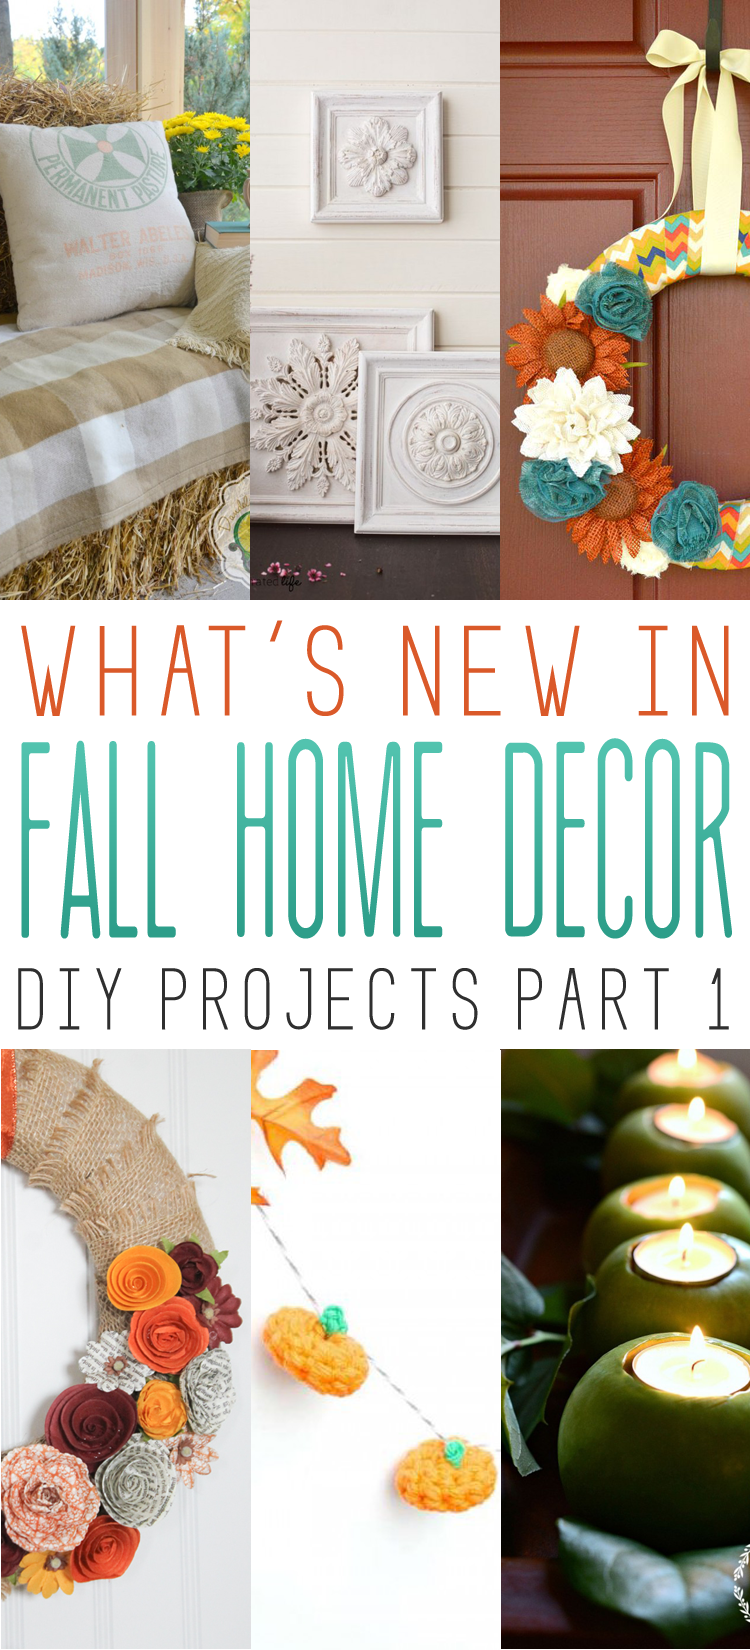 What's New In Fall Home Decor DIY Projects Part 1 - The ...